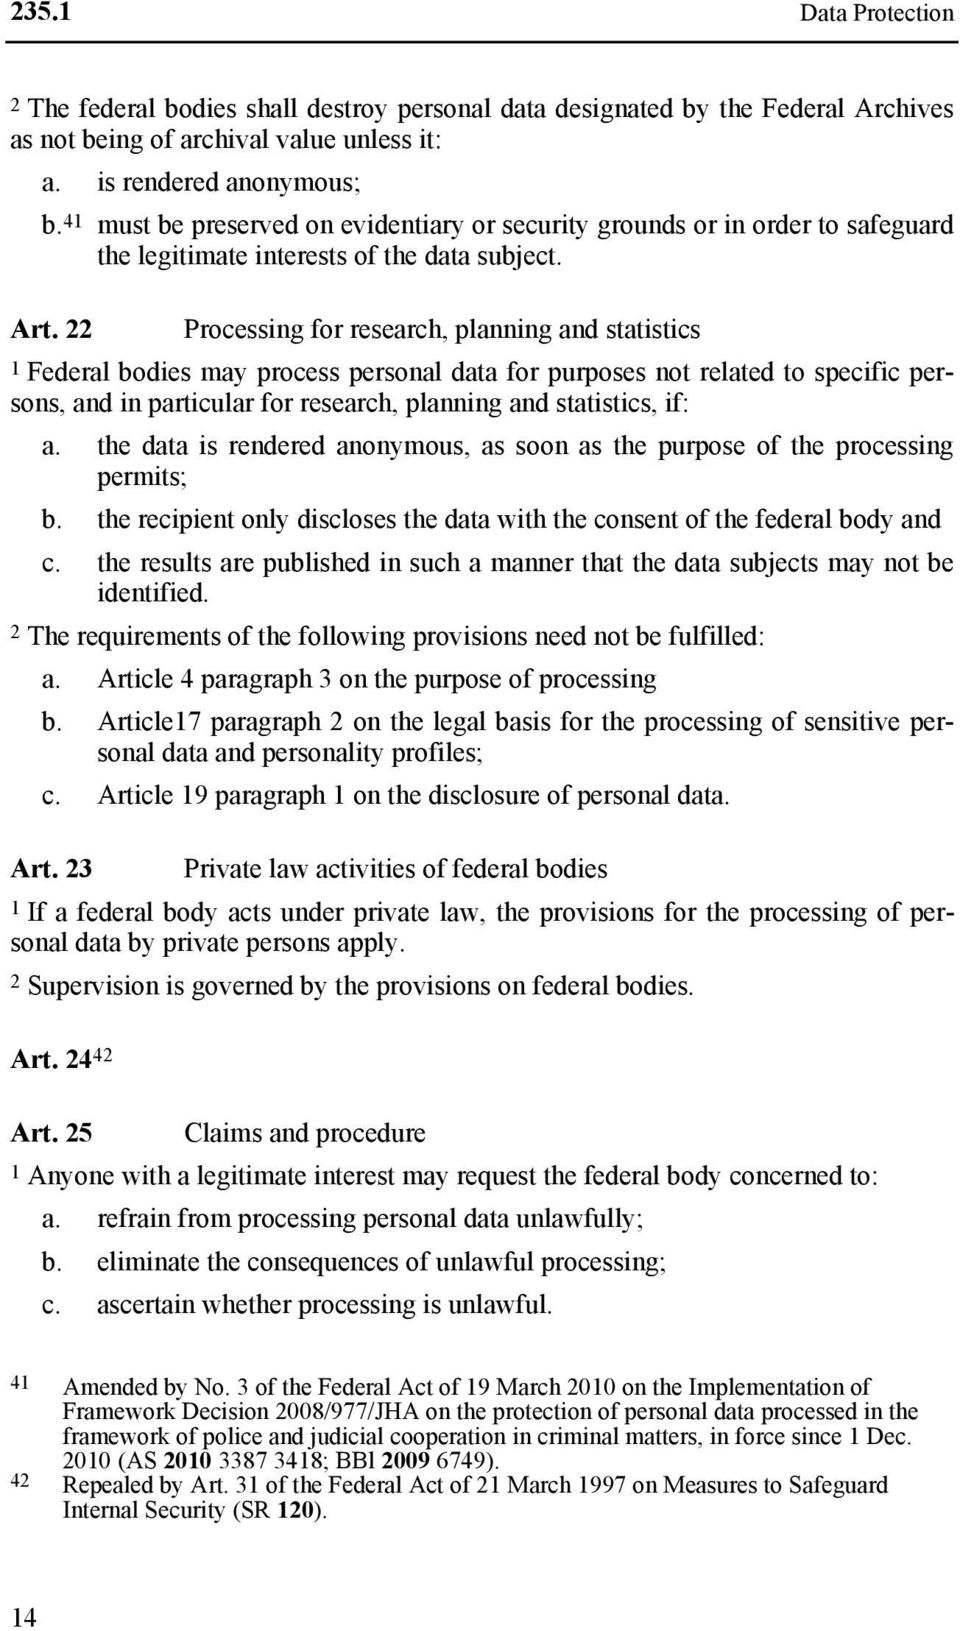 22 Processing for research, planning and statistics 1 Federal bodies may process personal data for purposes not related to specific persons, and in particular for research, planning and statistics,